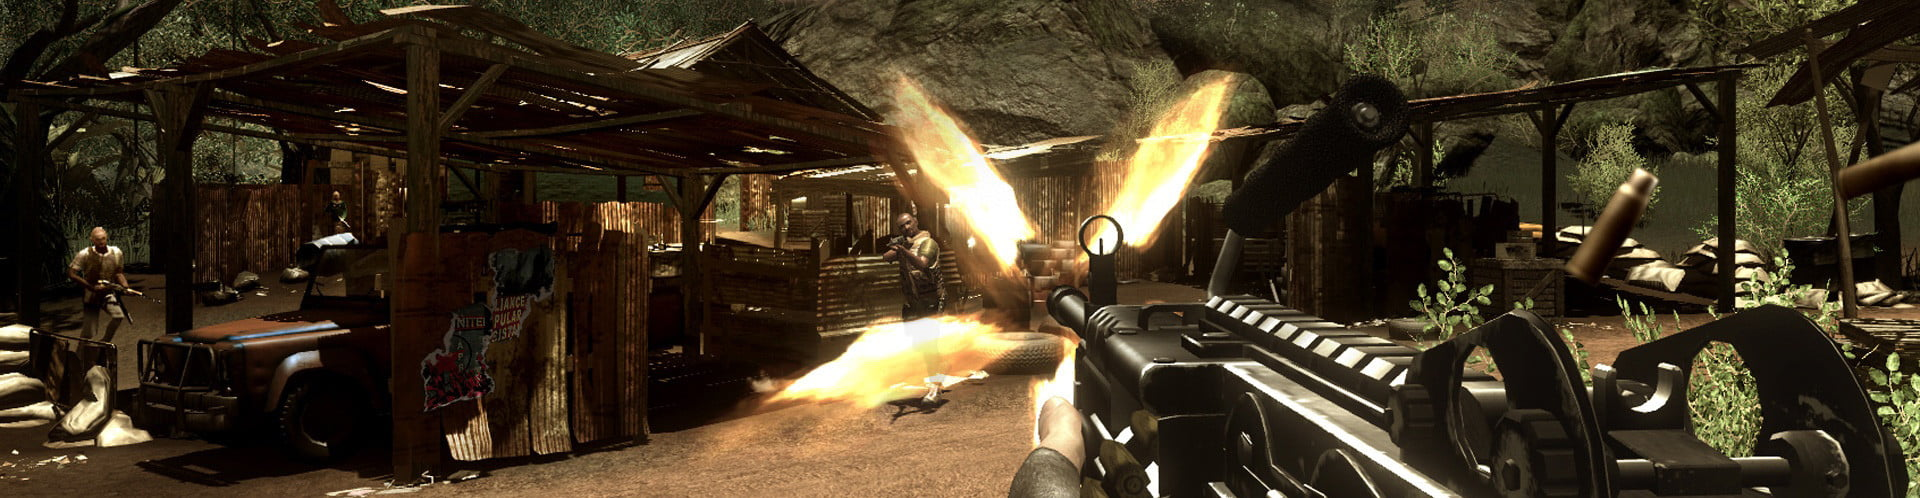 10 Years In Far Cry 2 Is Still The Most Exciting Of The Series